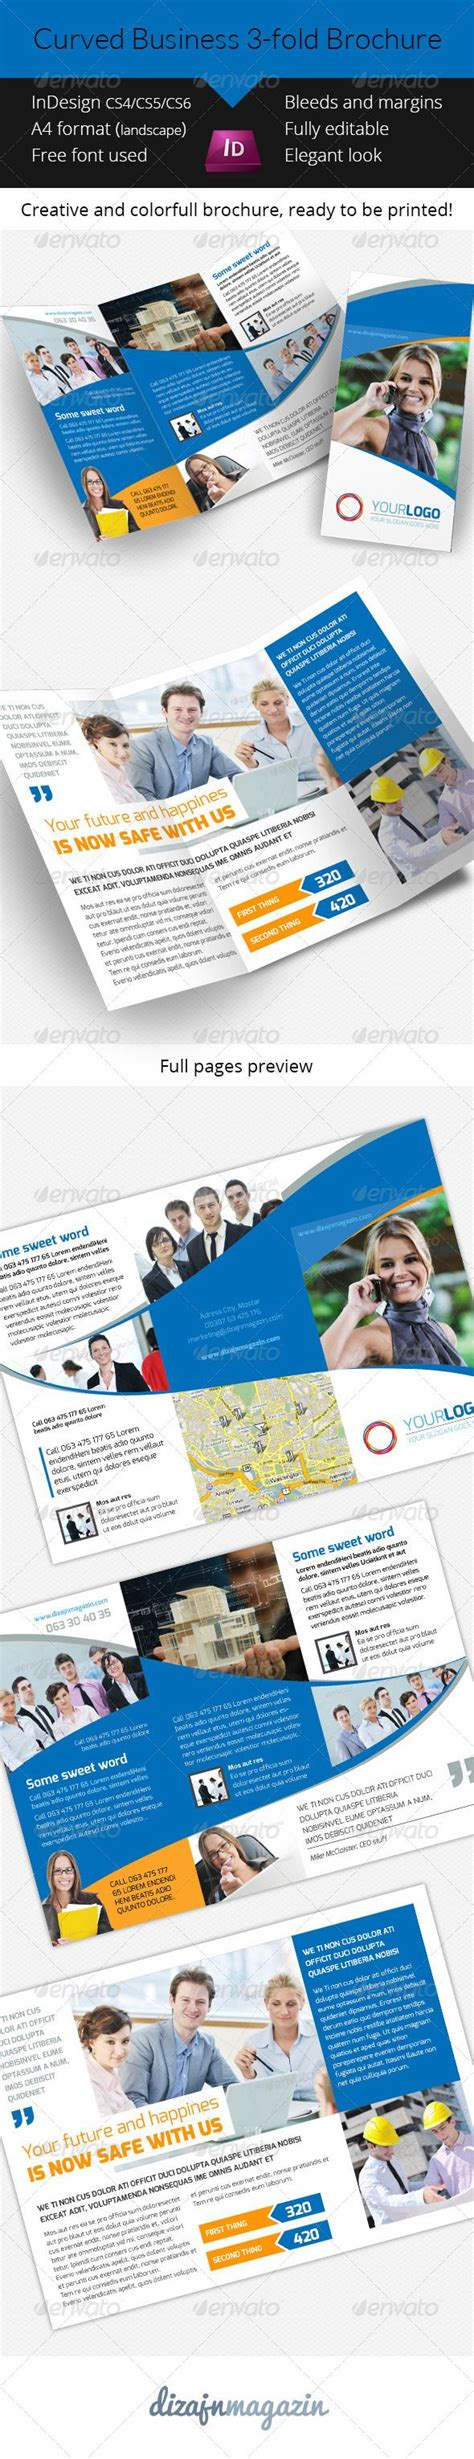 tri fold brochure template indesign cs6 curved biz 3 fold brochure indesign template